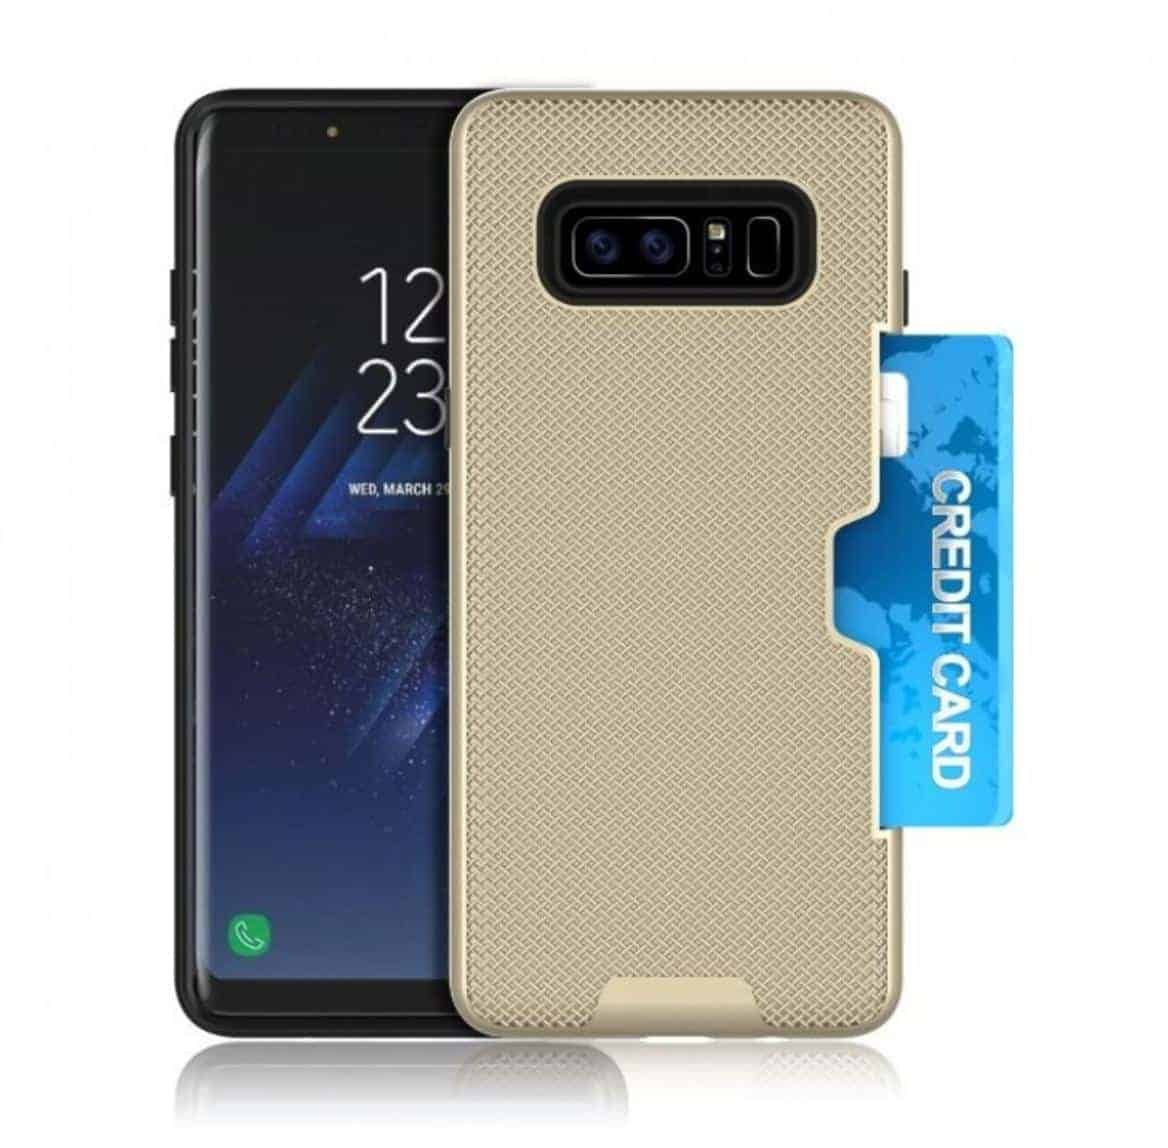 Galaxy Note 8 Render Case Leak Zyadatef 1